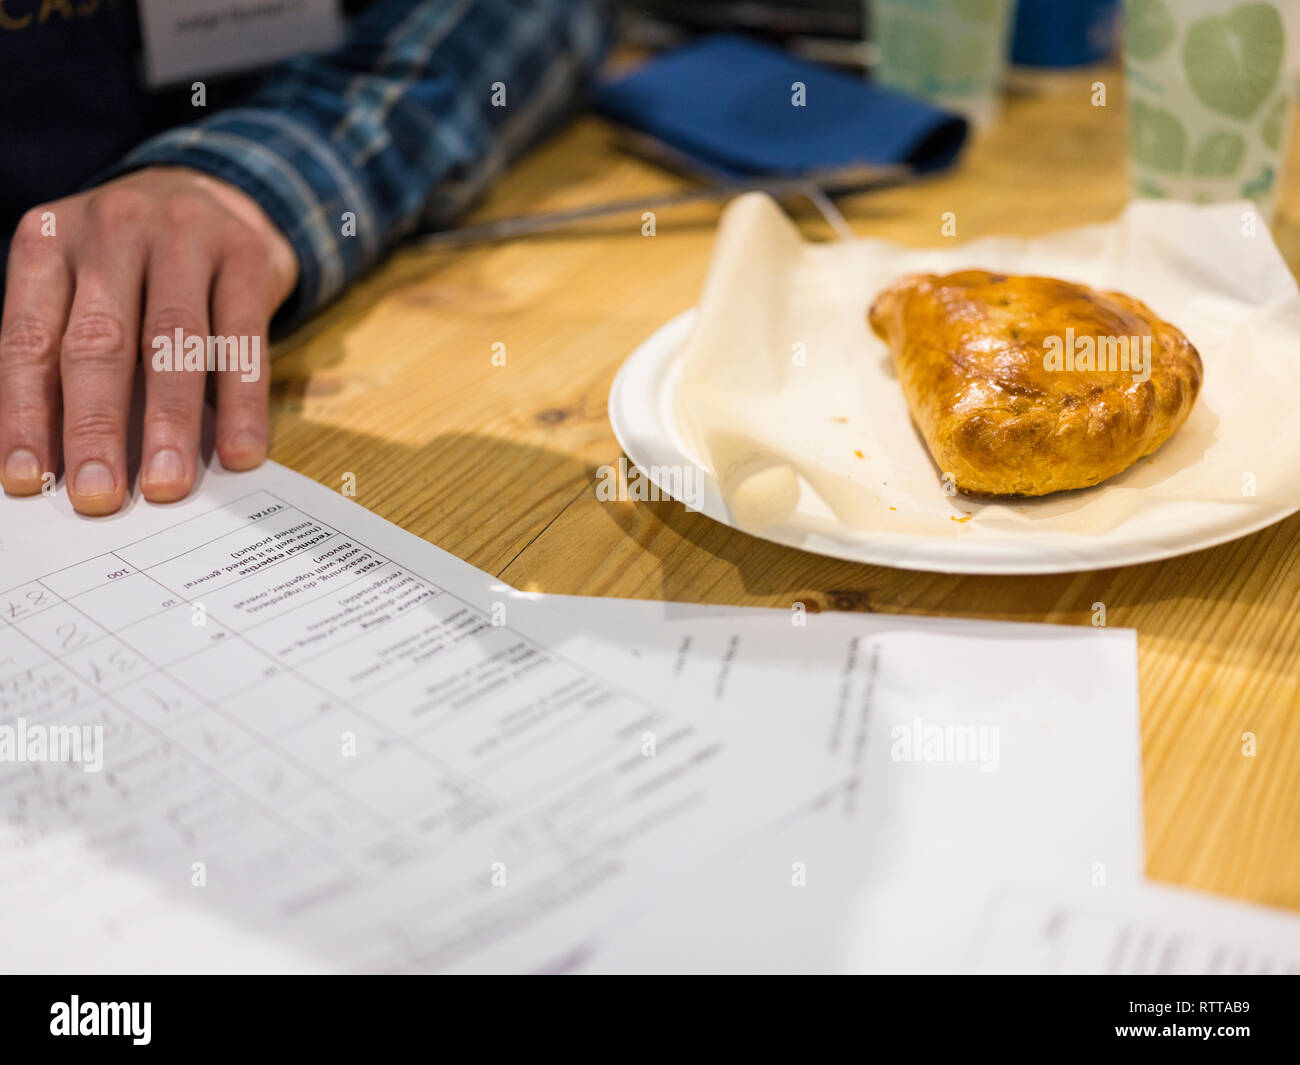 Images from the 2019 World Pasty Championship at the Eden Project, Cornwall. - Stock Image